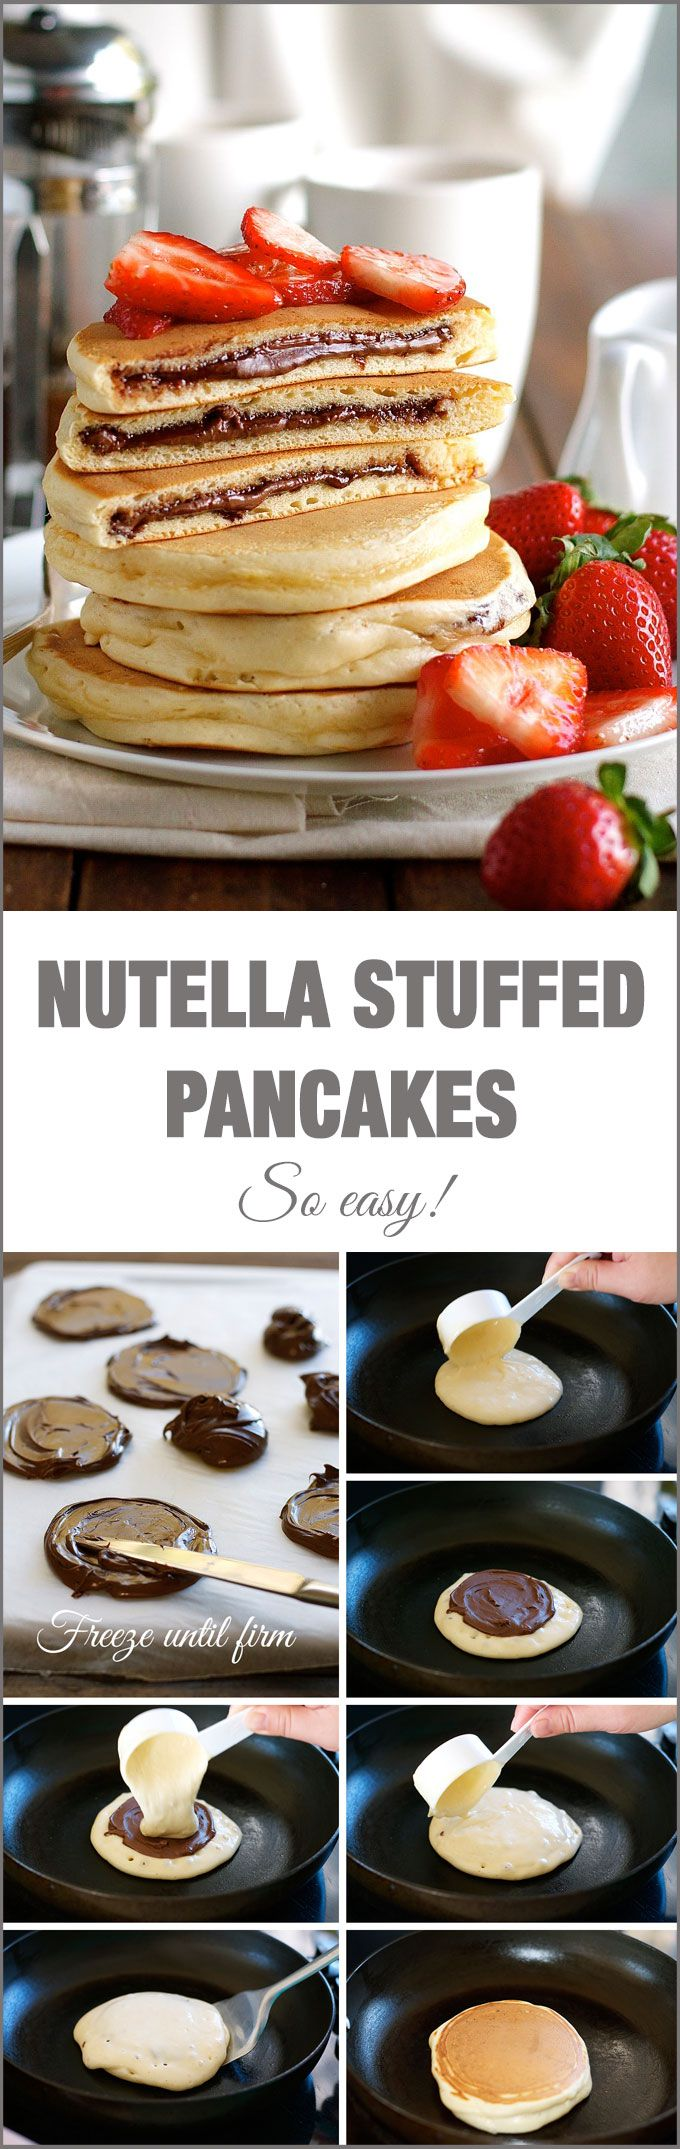 Nutella Stuffed Pancakes. I think they speak for themselves.